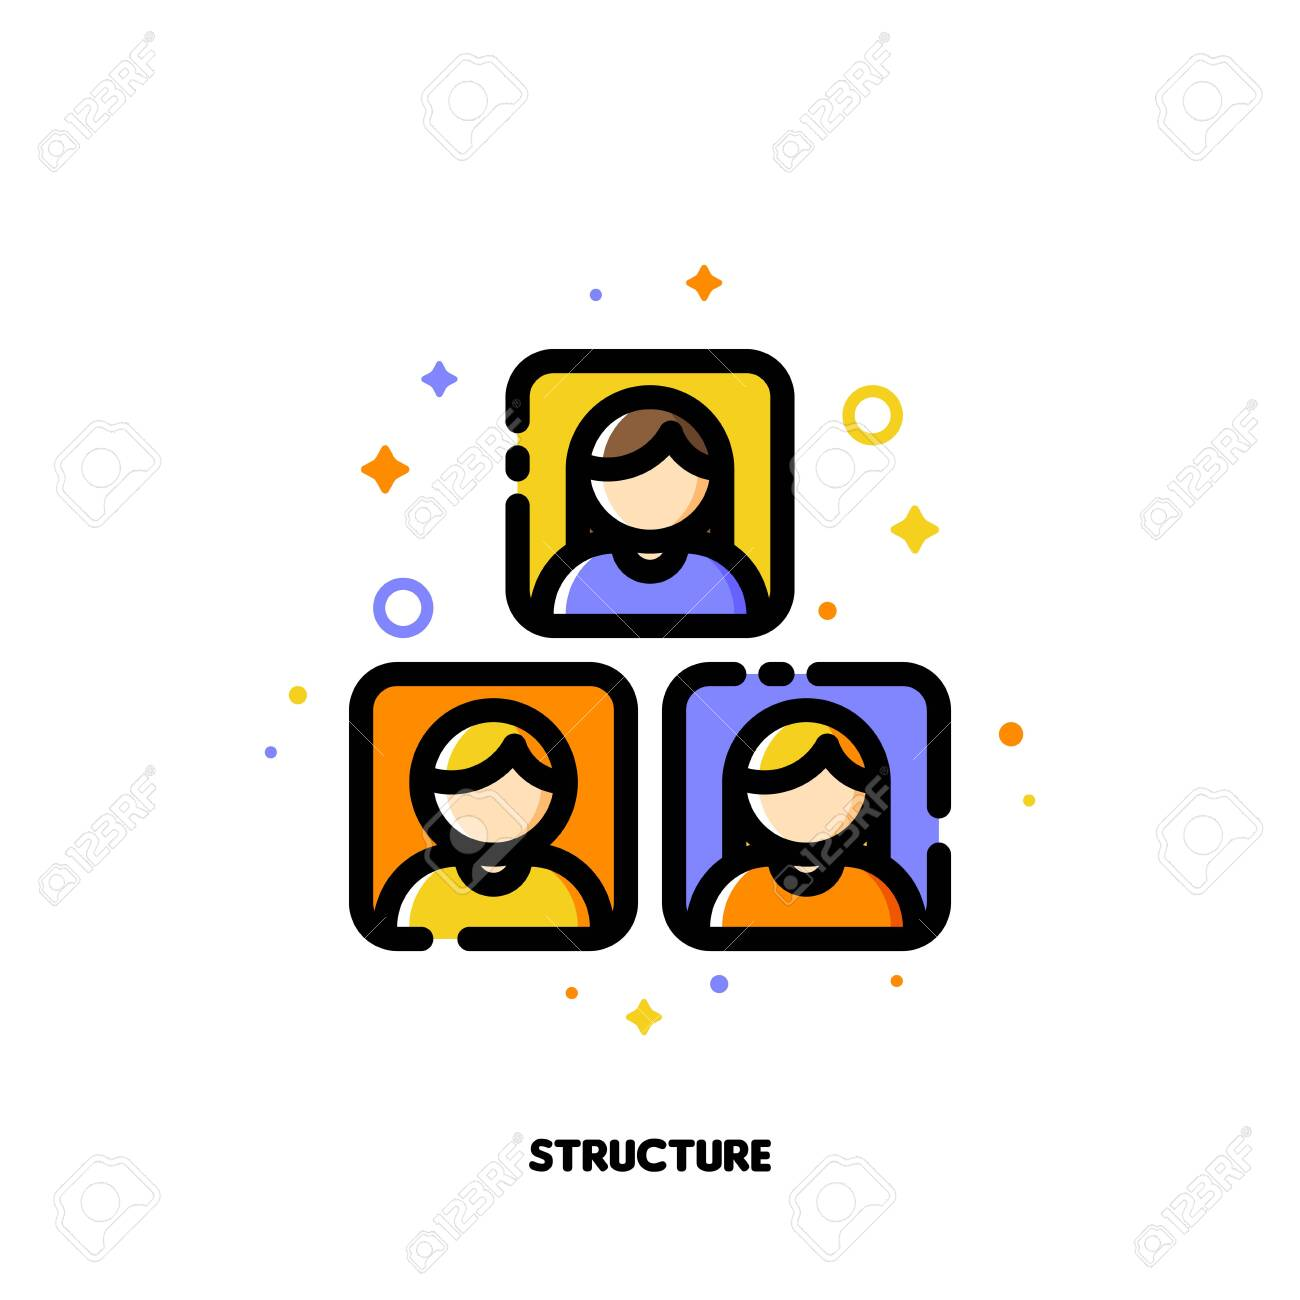 company organizational structure icon for human resources management royalty free cliparts vectors and stock illustration image 135284003 company organizational structure icon for human resources management royalty free cliparts vectors and stock illustration image 135284003